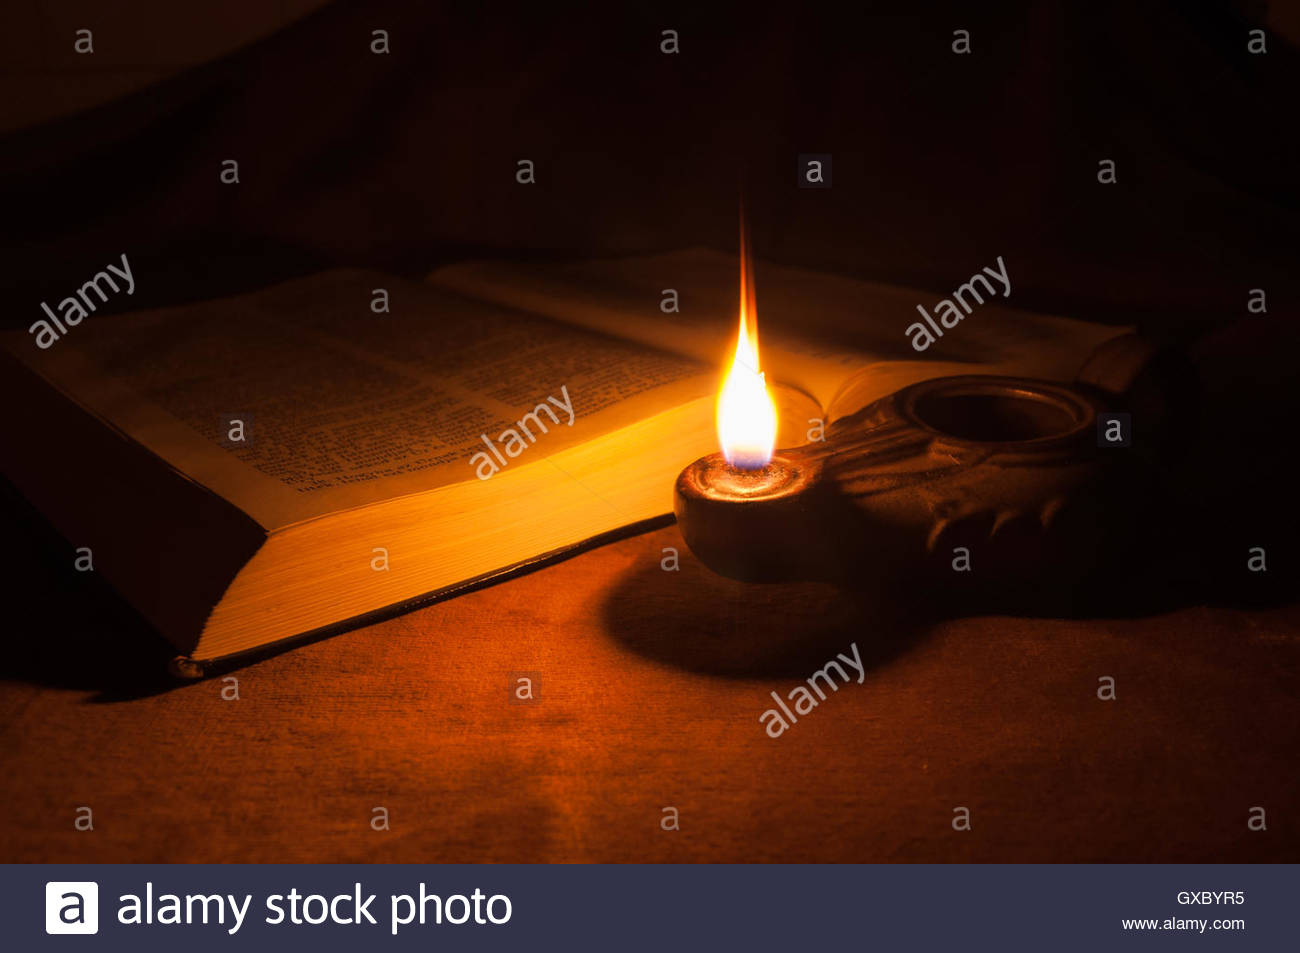 Oil Lamp And Bible Stock Photo 119506553 Alamy